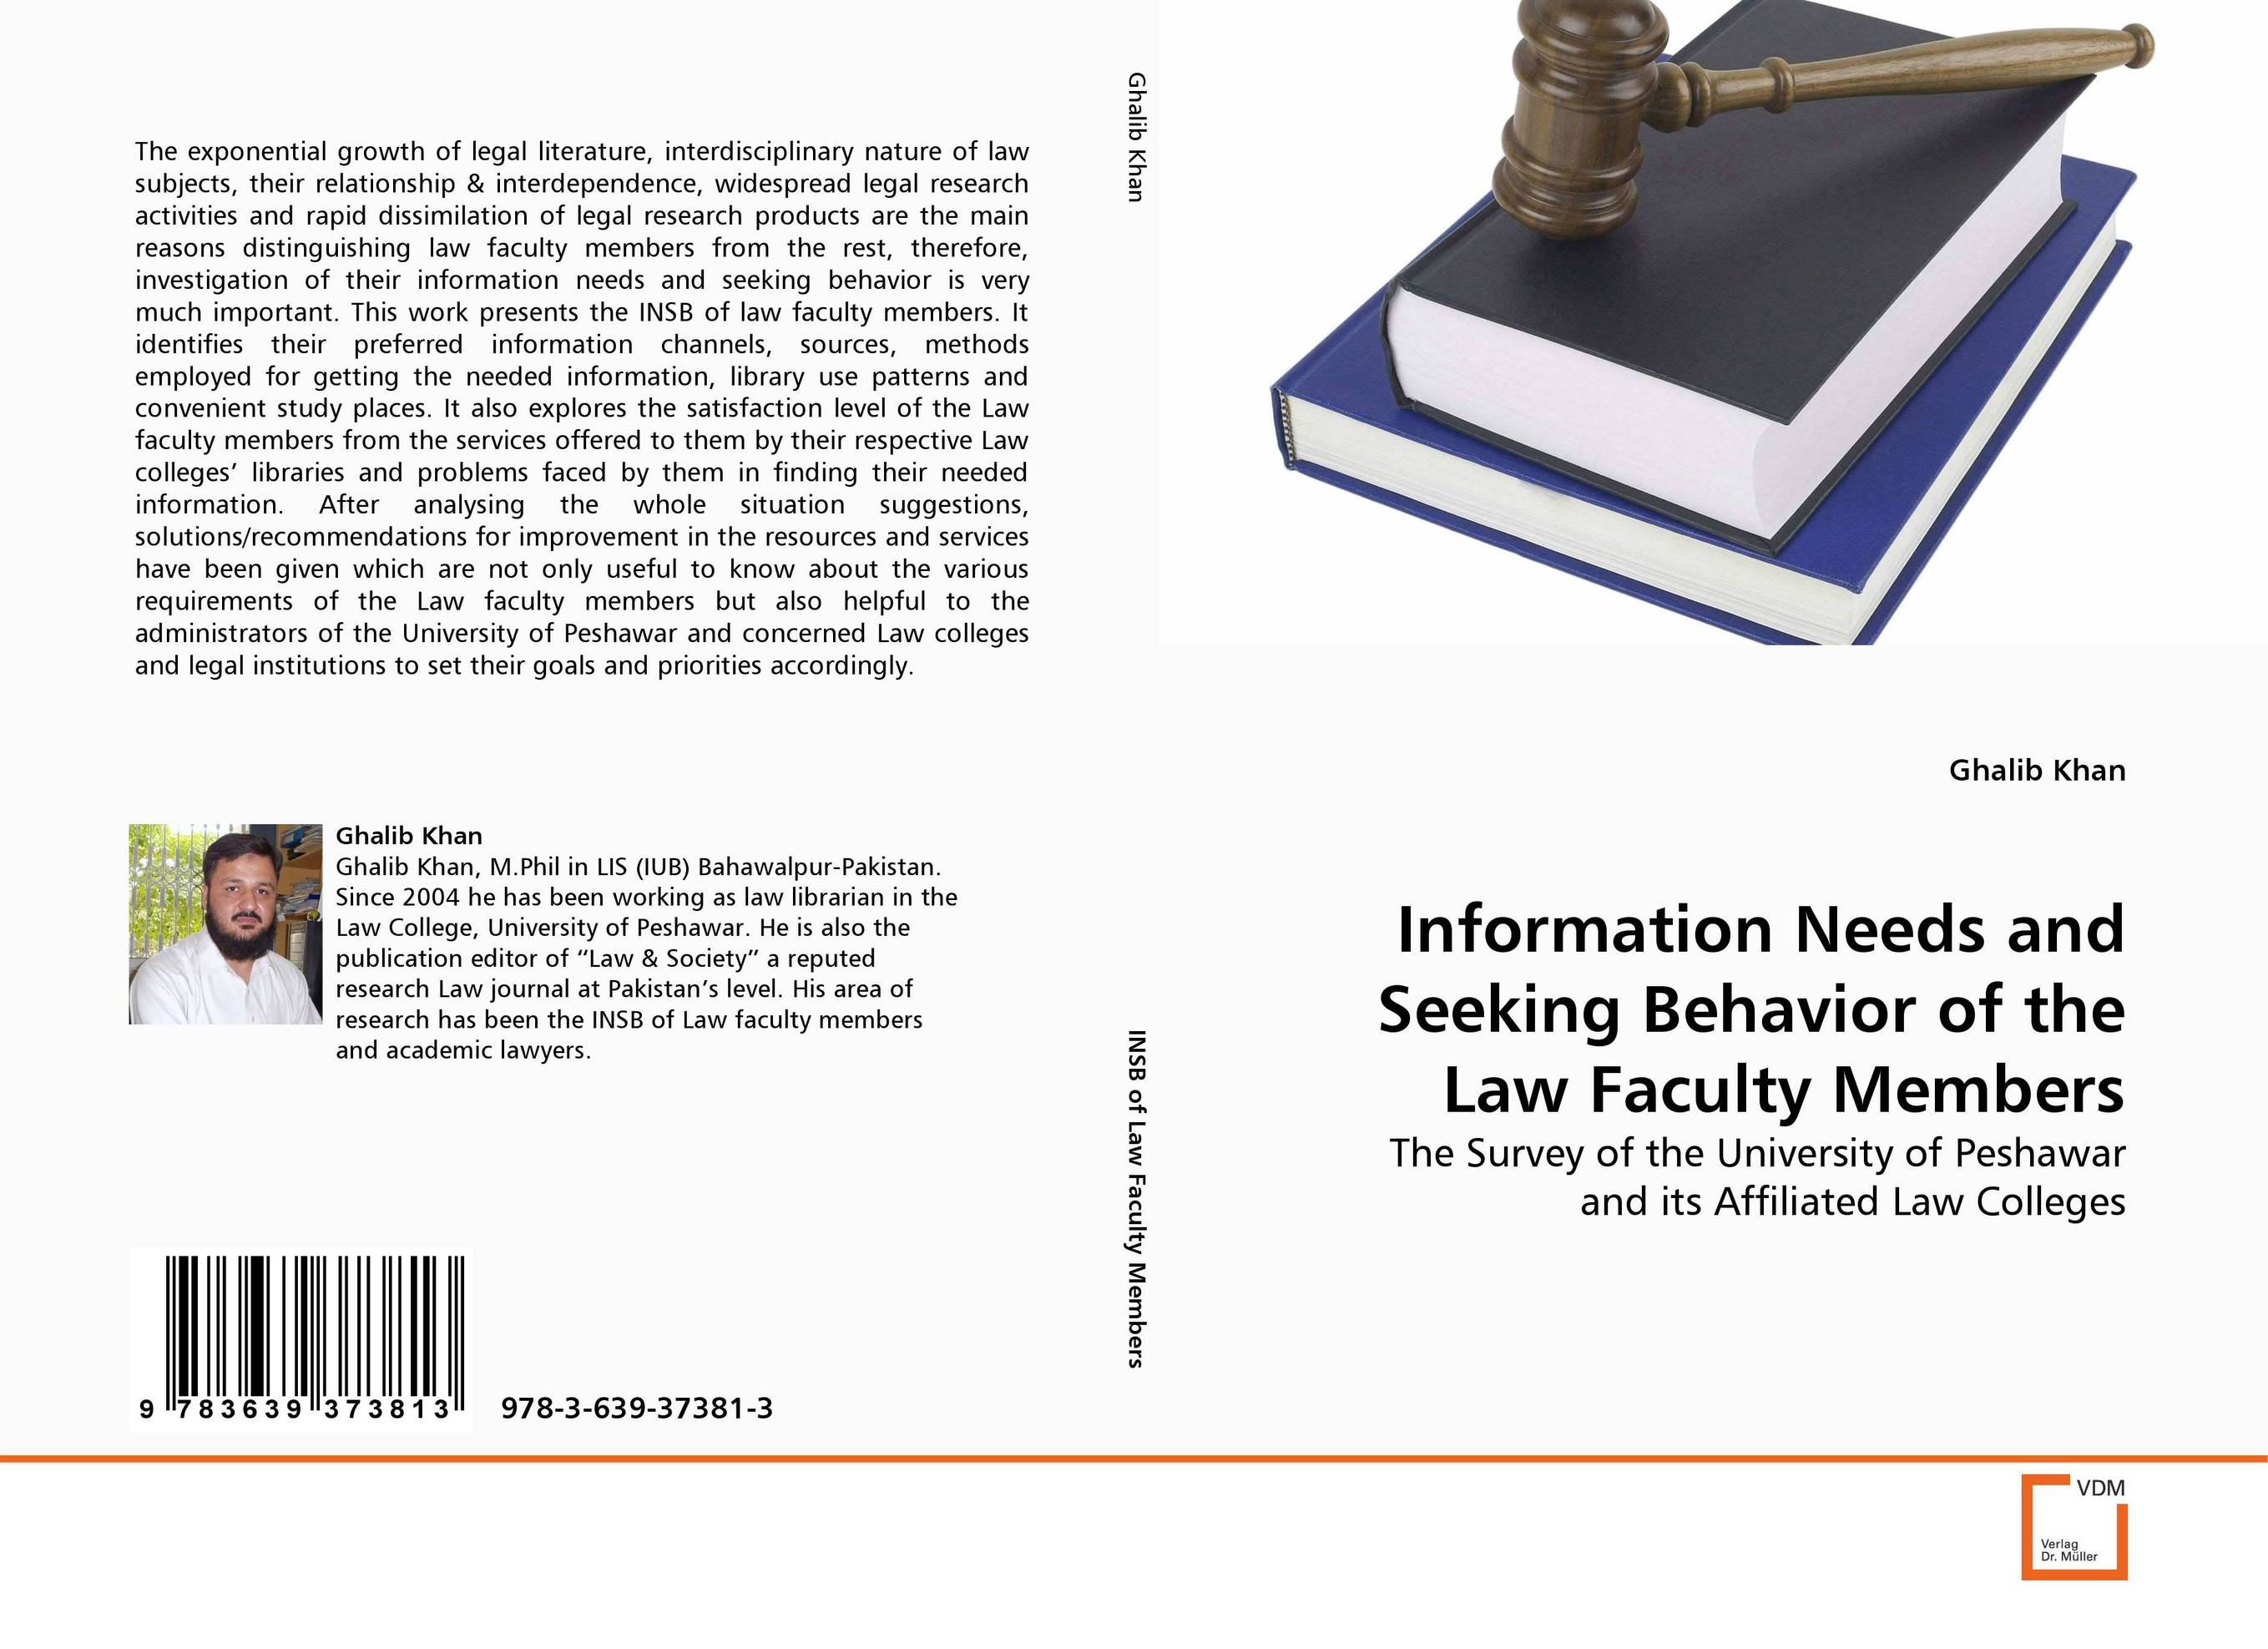 Information Needs and Seeking Behavior of the Law Faculty Members information searching and retrieval